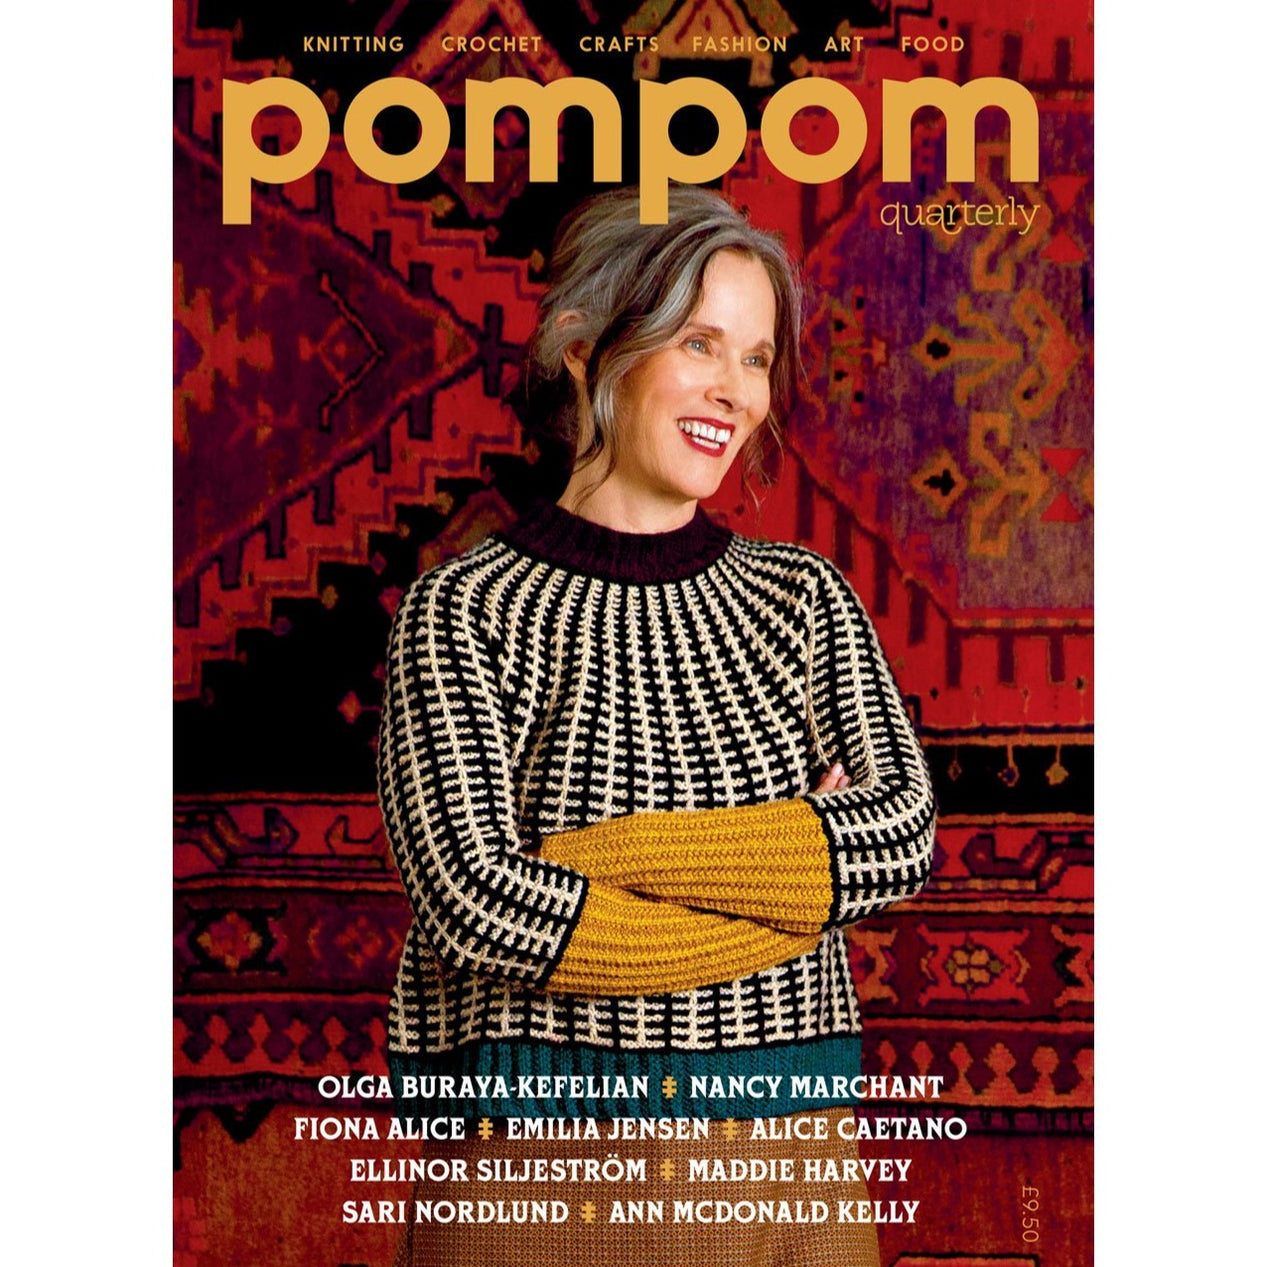 pompom quarterly - Issue 22 - Autumn 2017